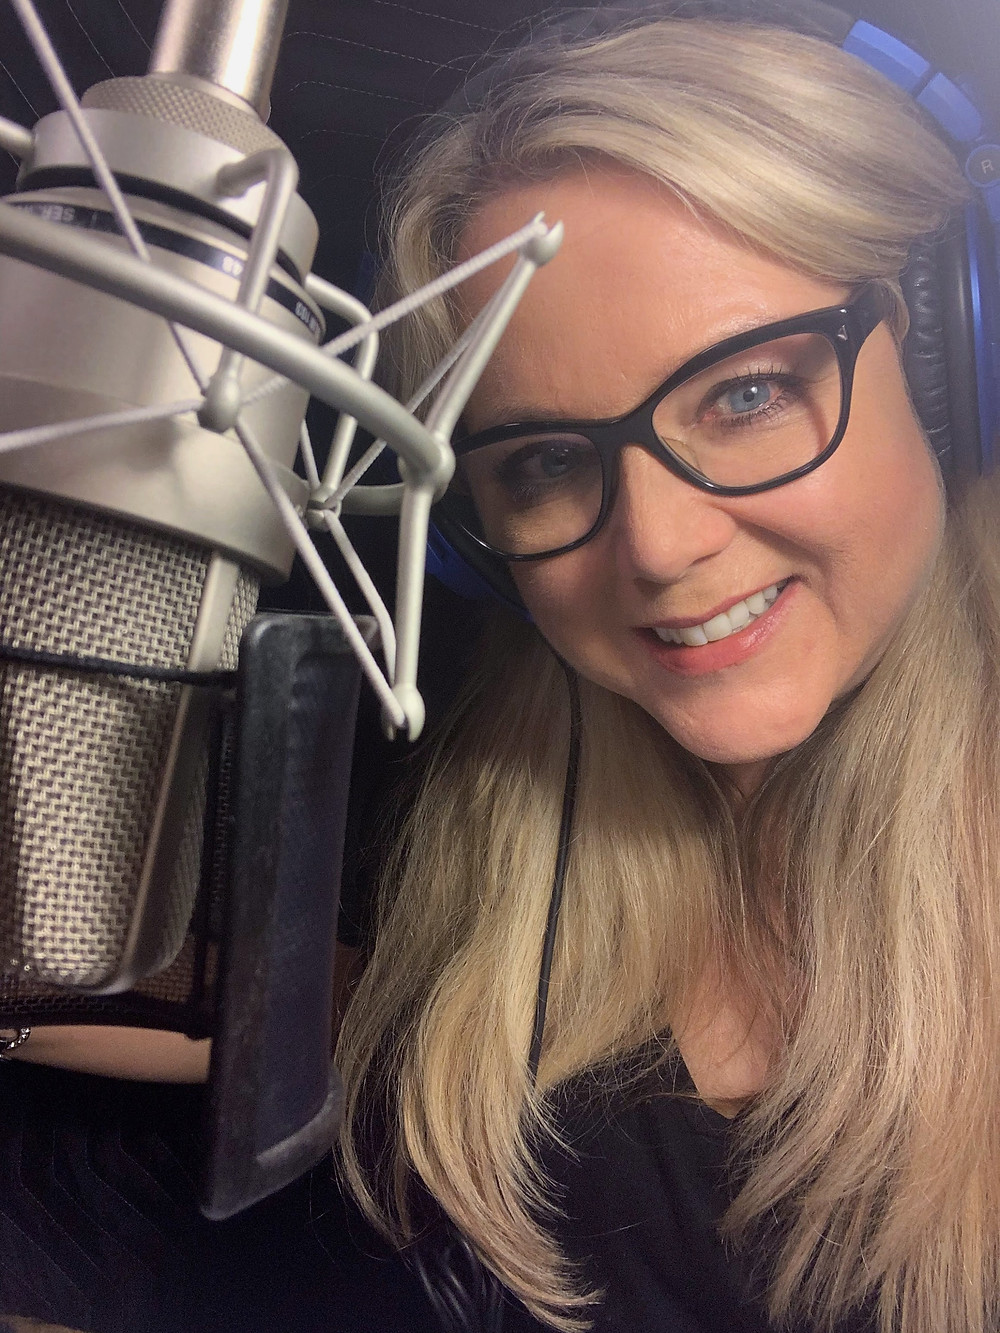 My last selfie in the booth my Dad built (I know, I'm a sentimental girl!)